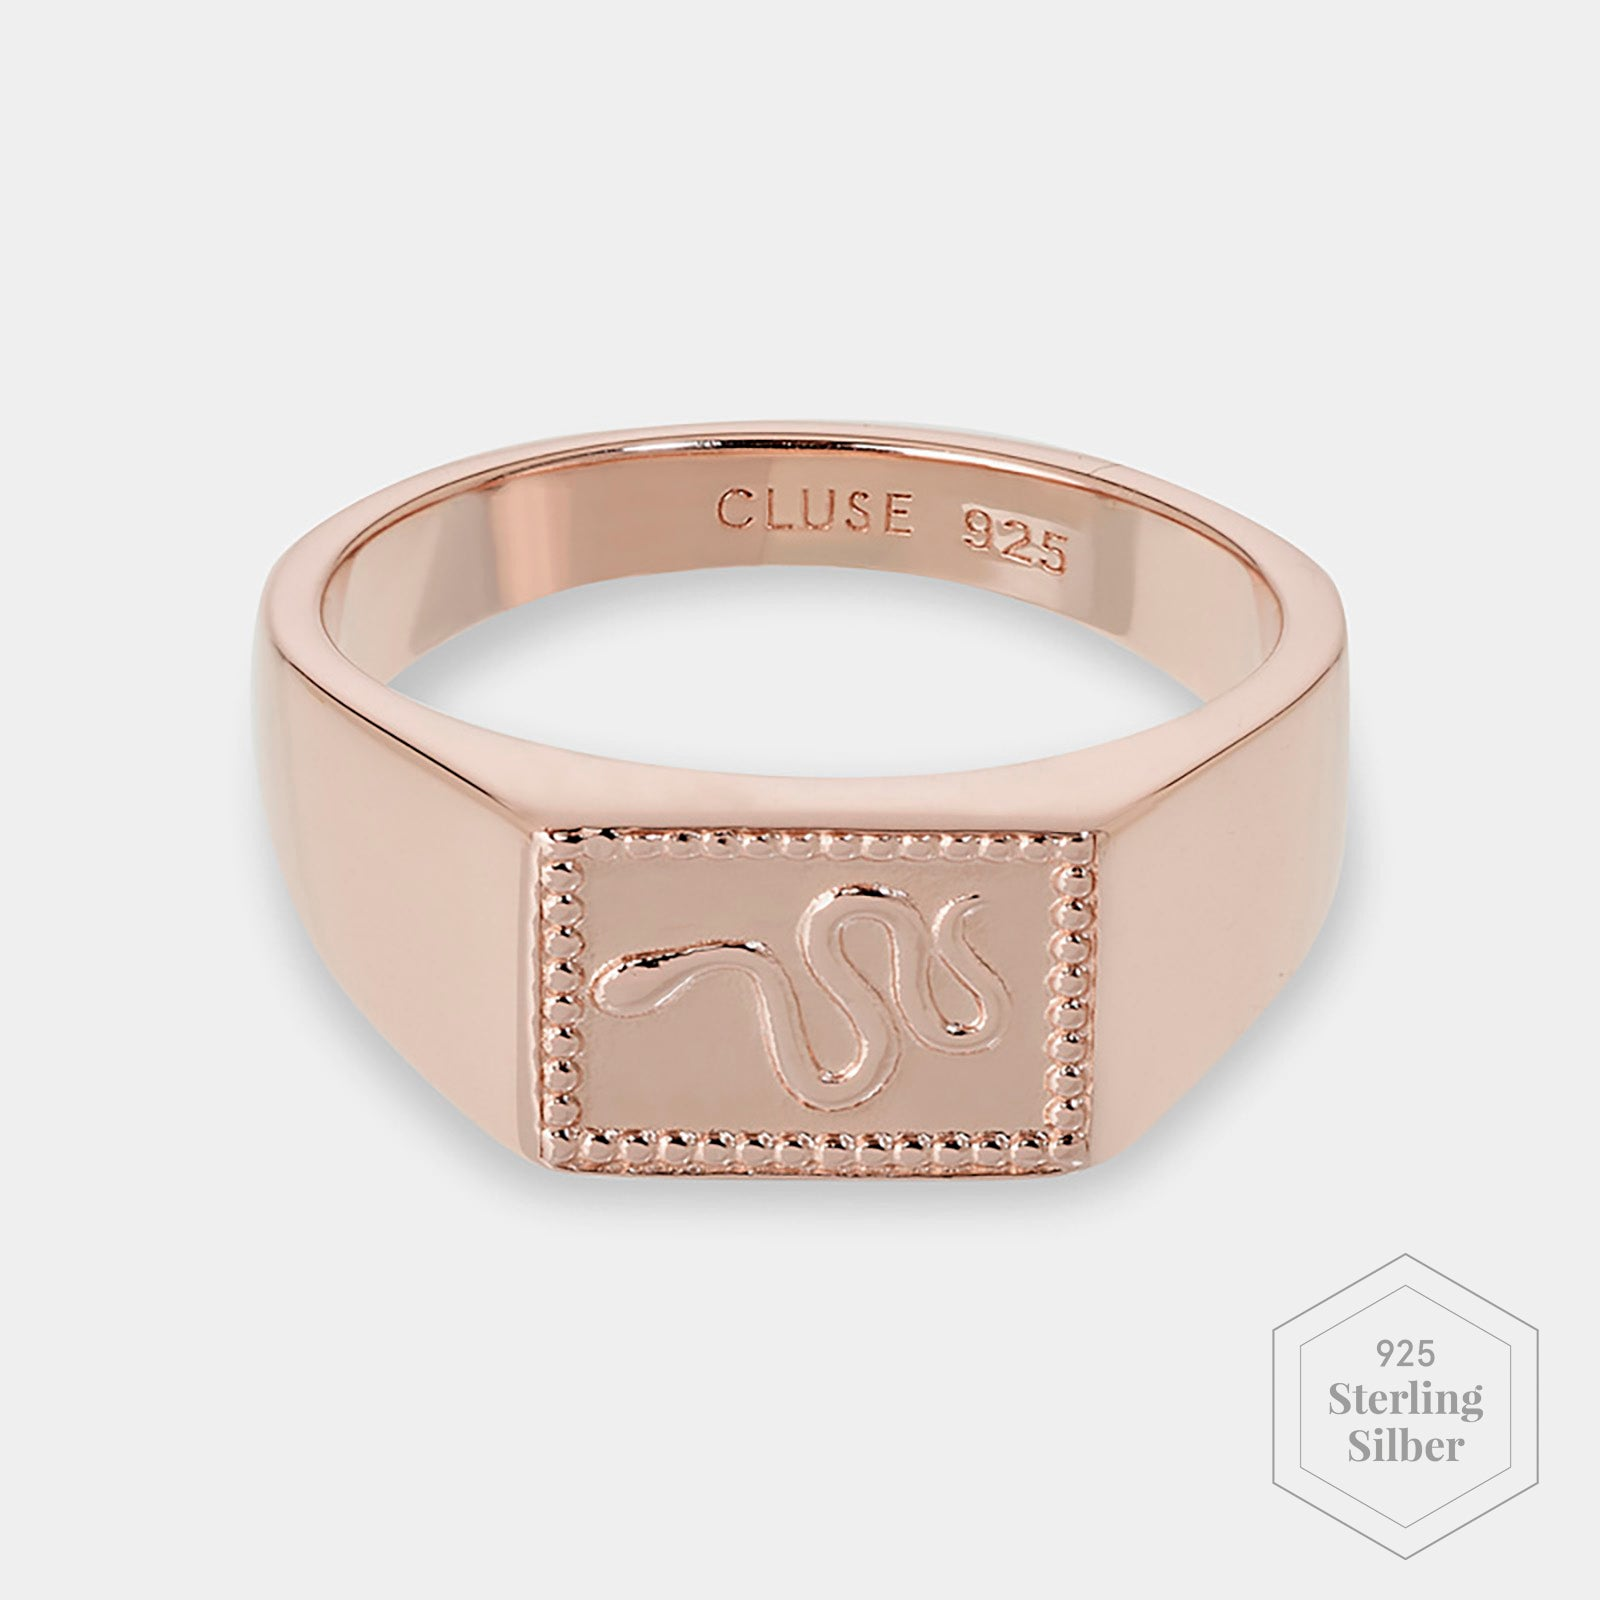 CLUSE Force Tropicale Rose Gold Signet Rectangular Ring 56 CLJ40012-56 - Ringgröße 56